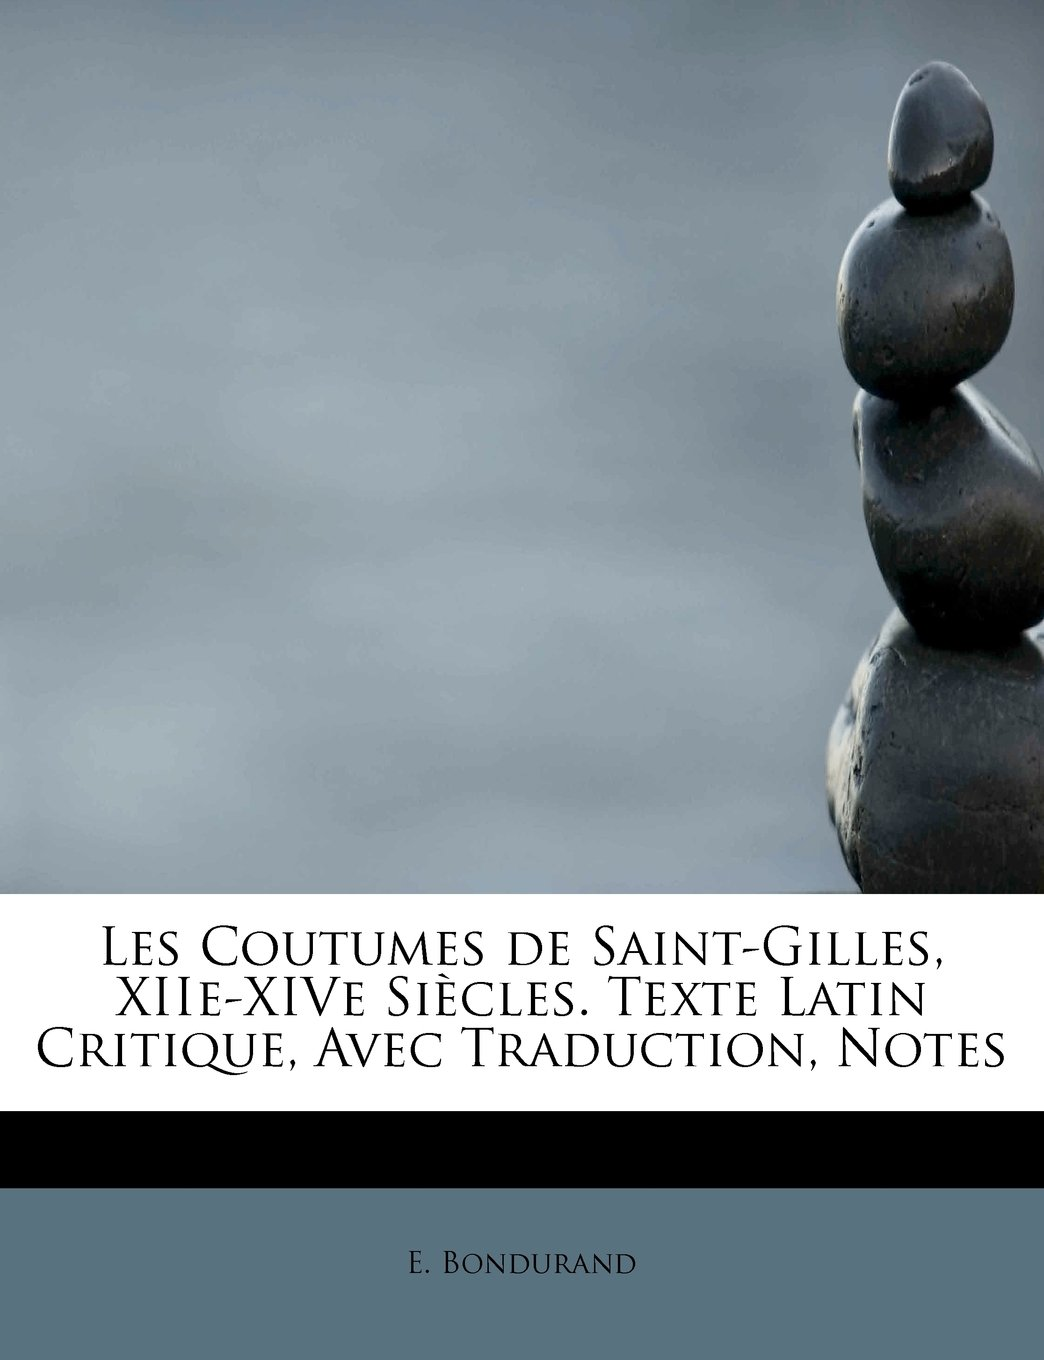 Download Les Coutumes de Saint-Gilles, XIIe-XIVe Siècles. Texte Latin Critique, Avec Traduction, Notes (French Edition) pdf